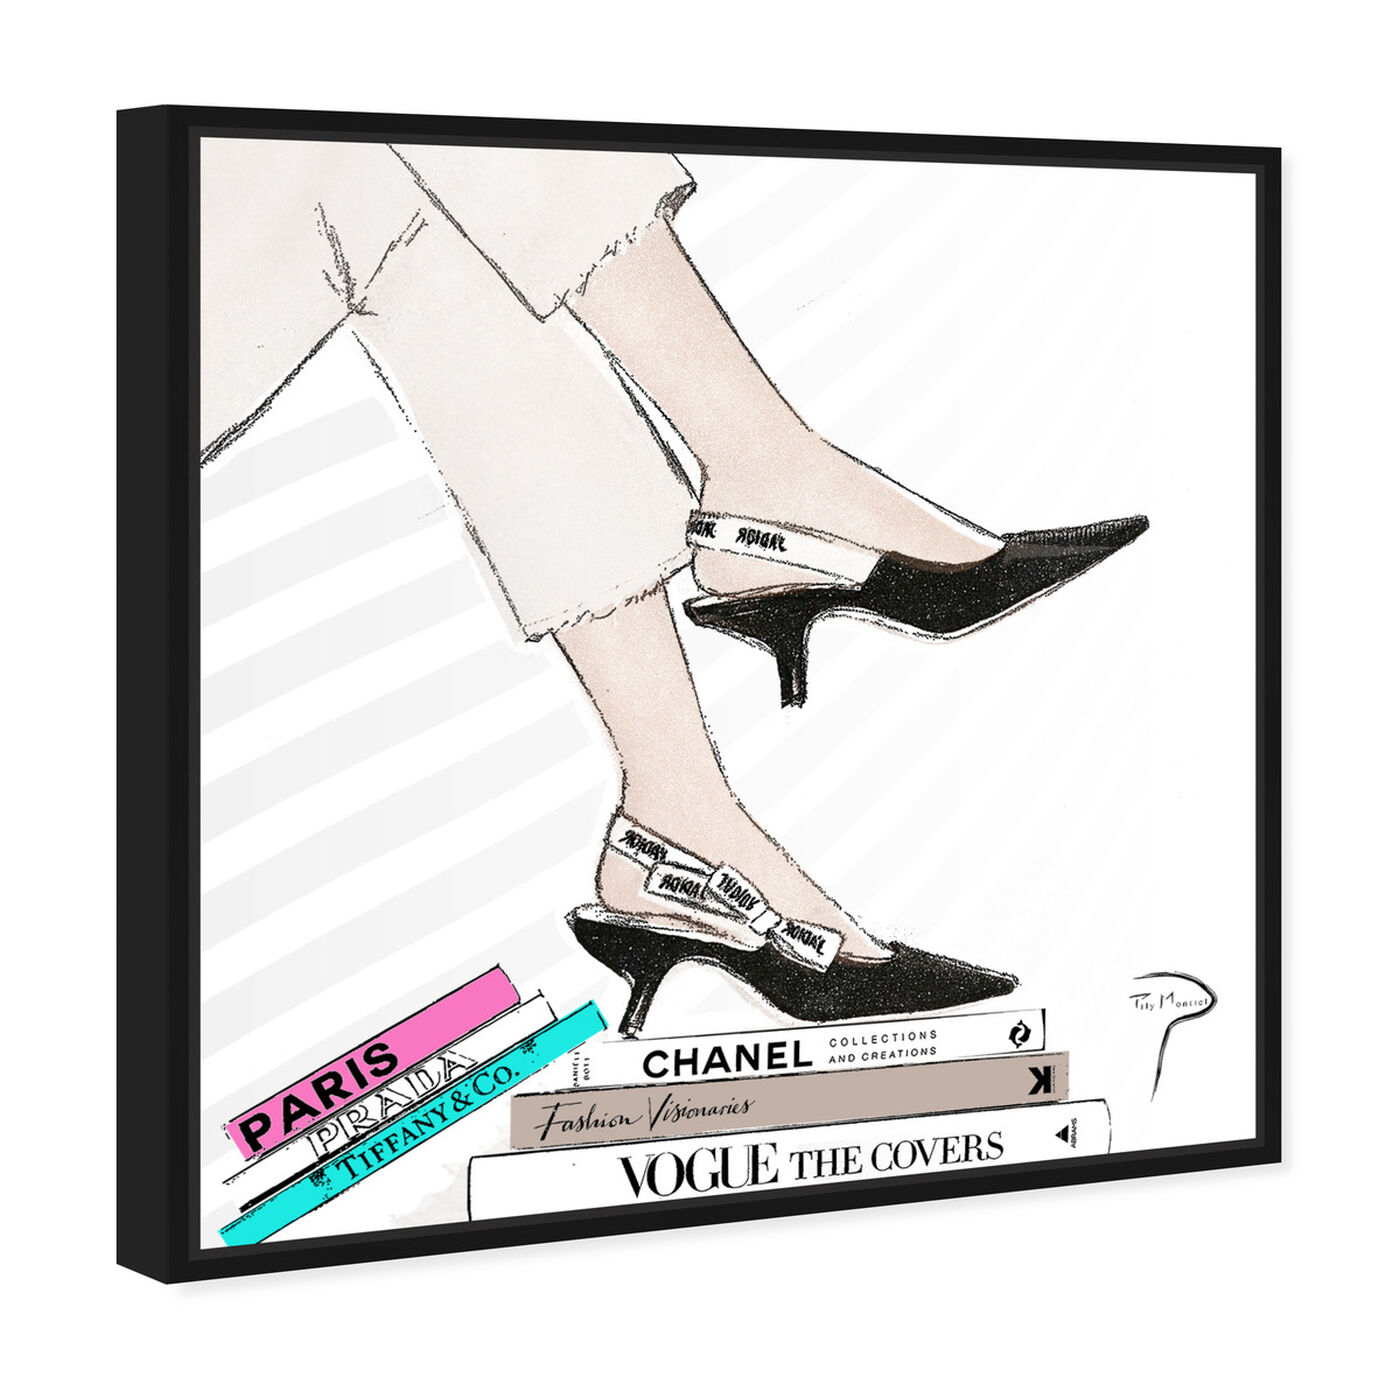 Angled view of Pily Montiel - Shoes with pink book featuring fashion and glam and shoes art.